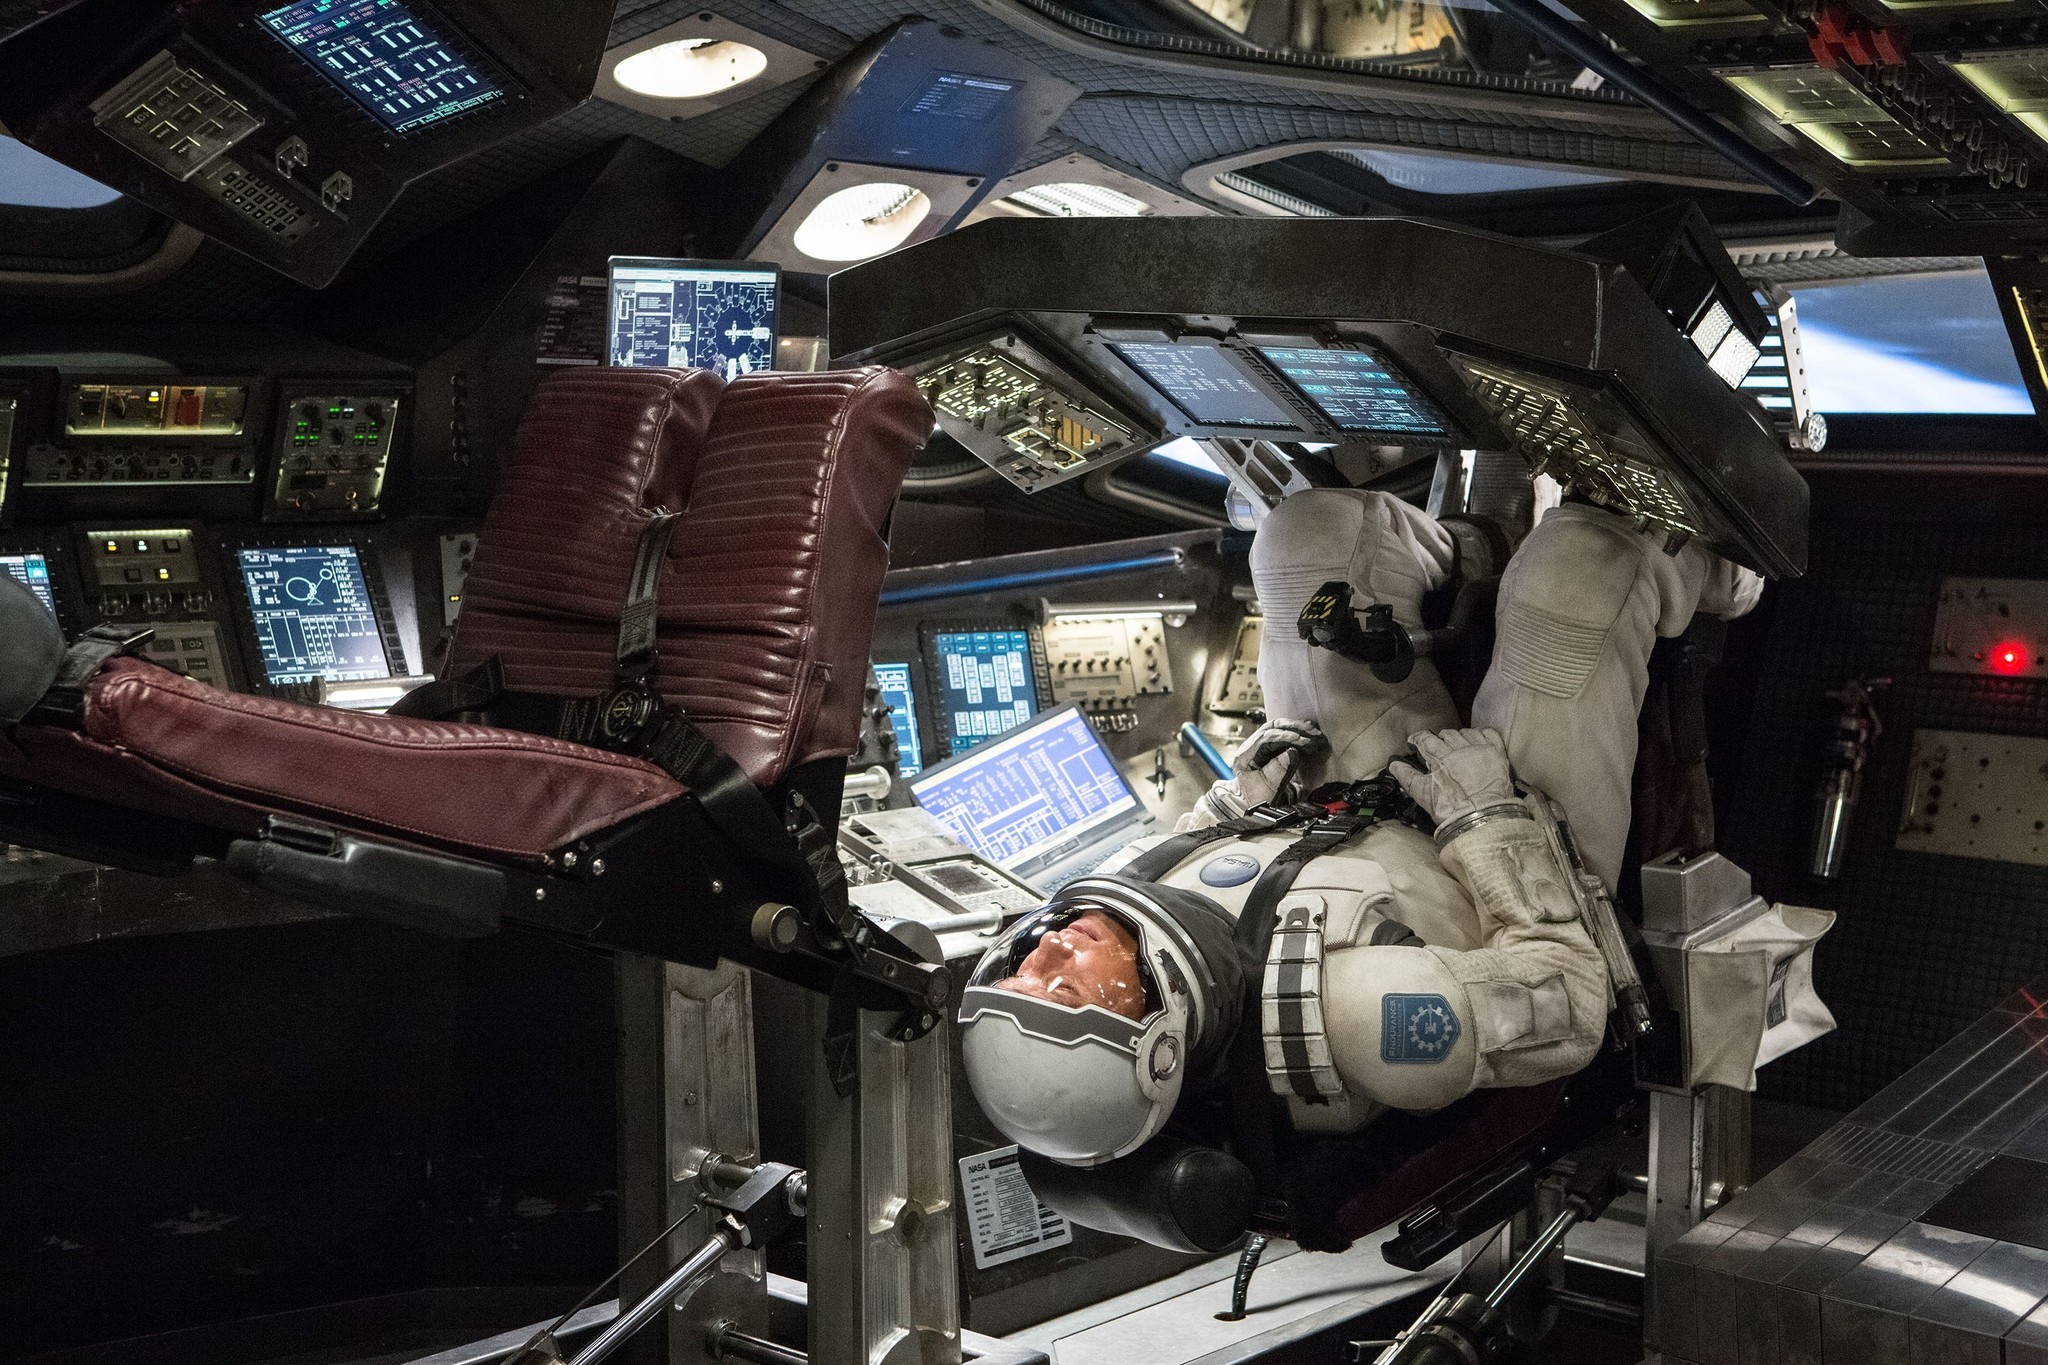 An astronaut upside down in a spaceship in this scene from